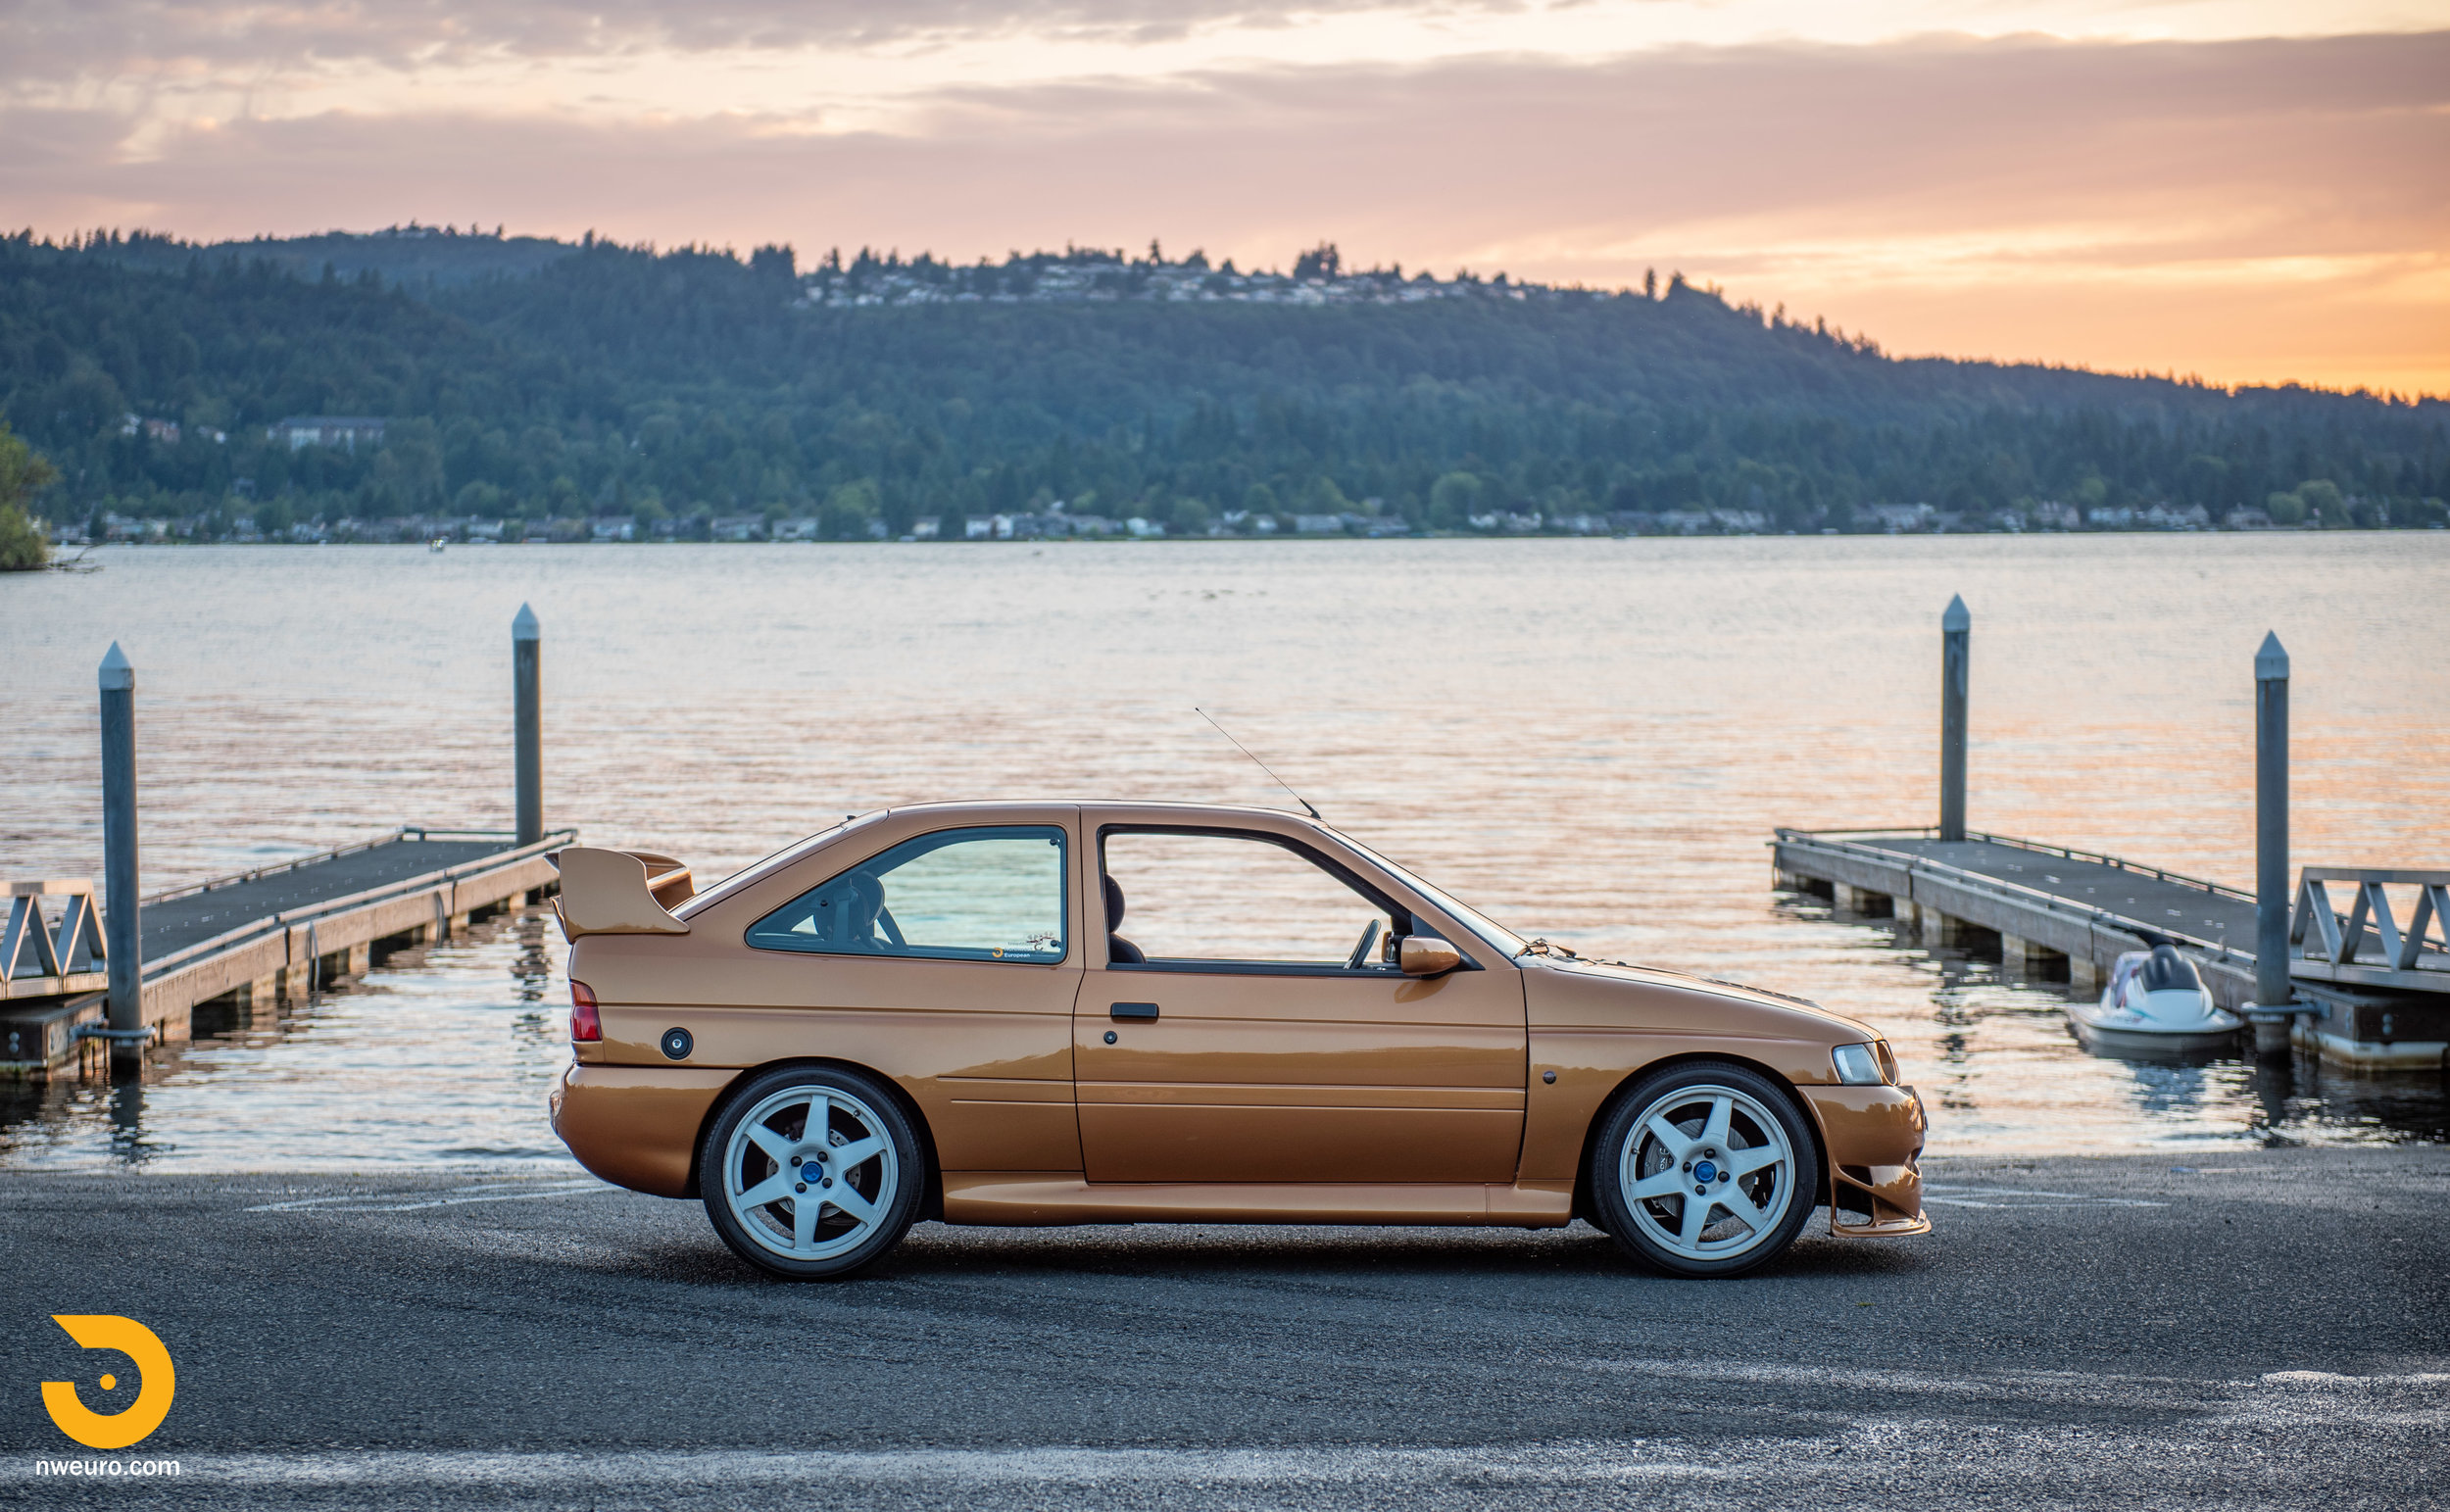 1995 Ford Escort Cosworth RS Gold-52.jpg